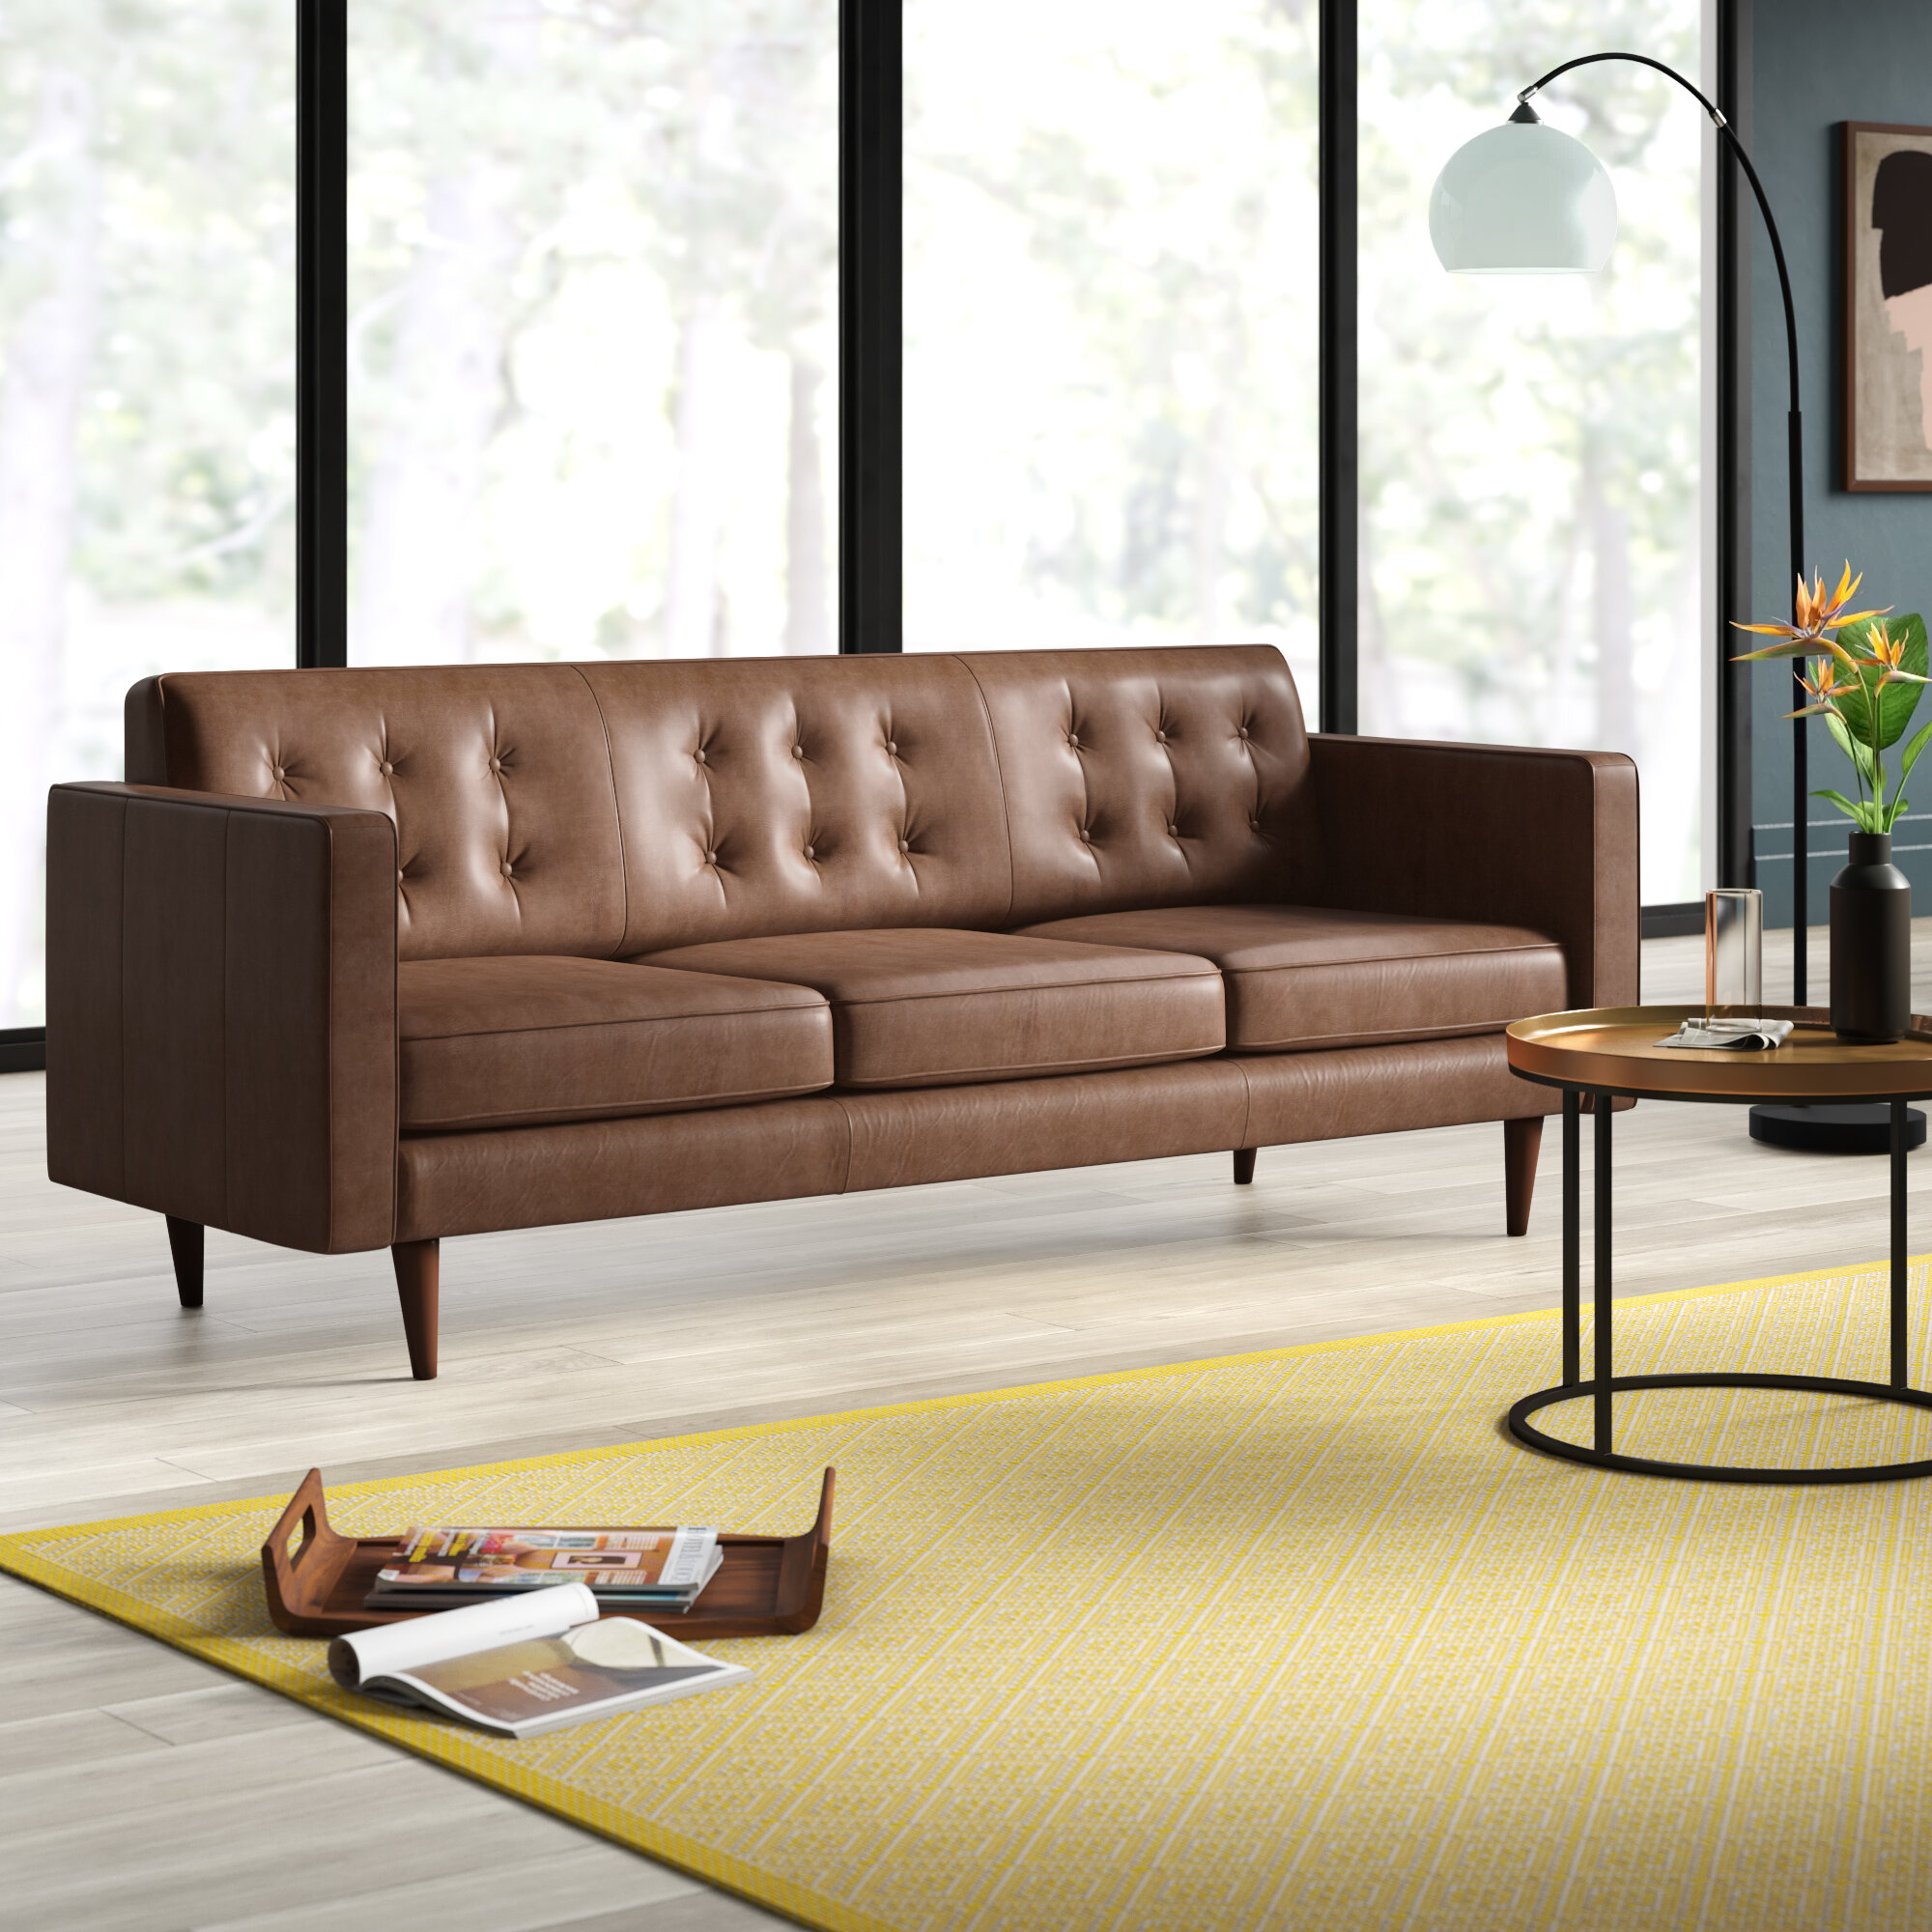 Wood Chair Second: Leather Sofa Mid Century Modern With Florence Mid Century Modern Right Sectional Sofas Cognac Tan (View 4 of 15)